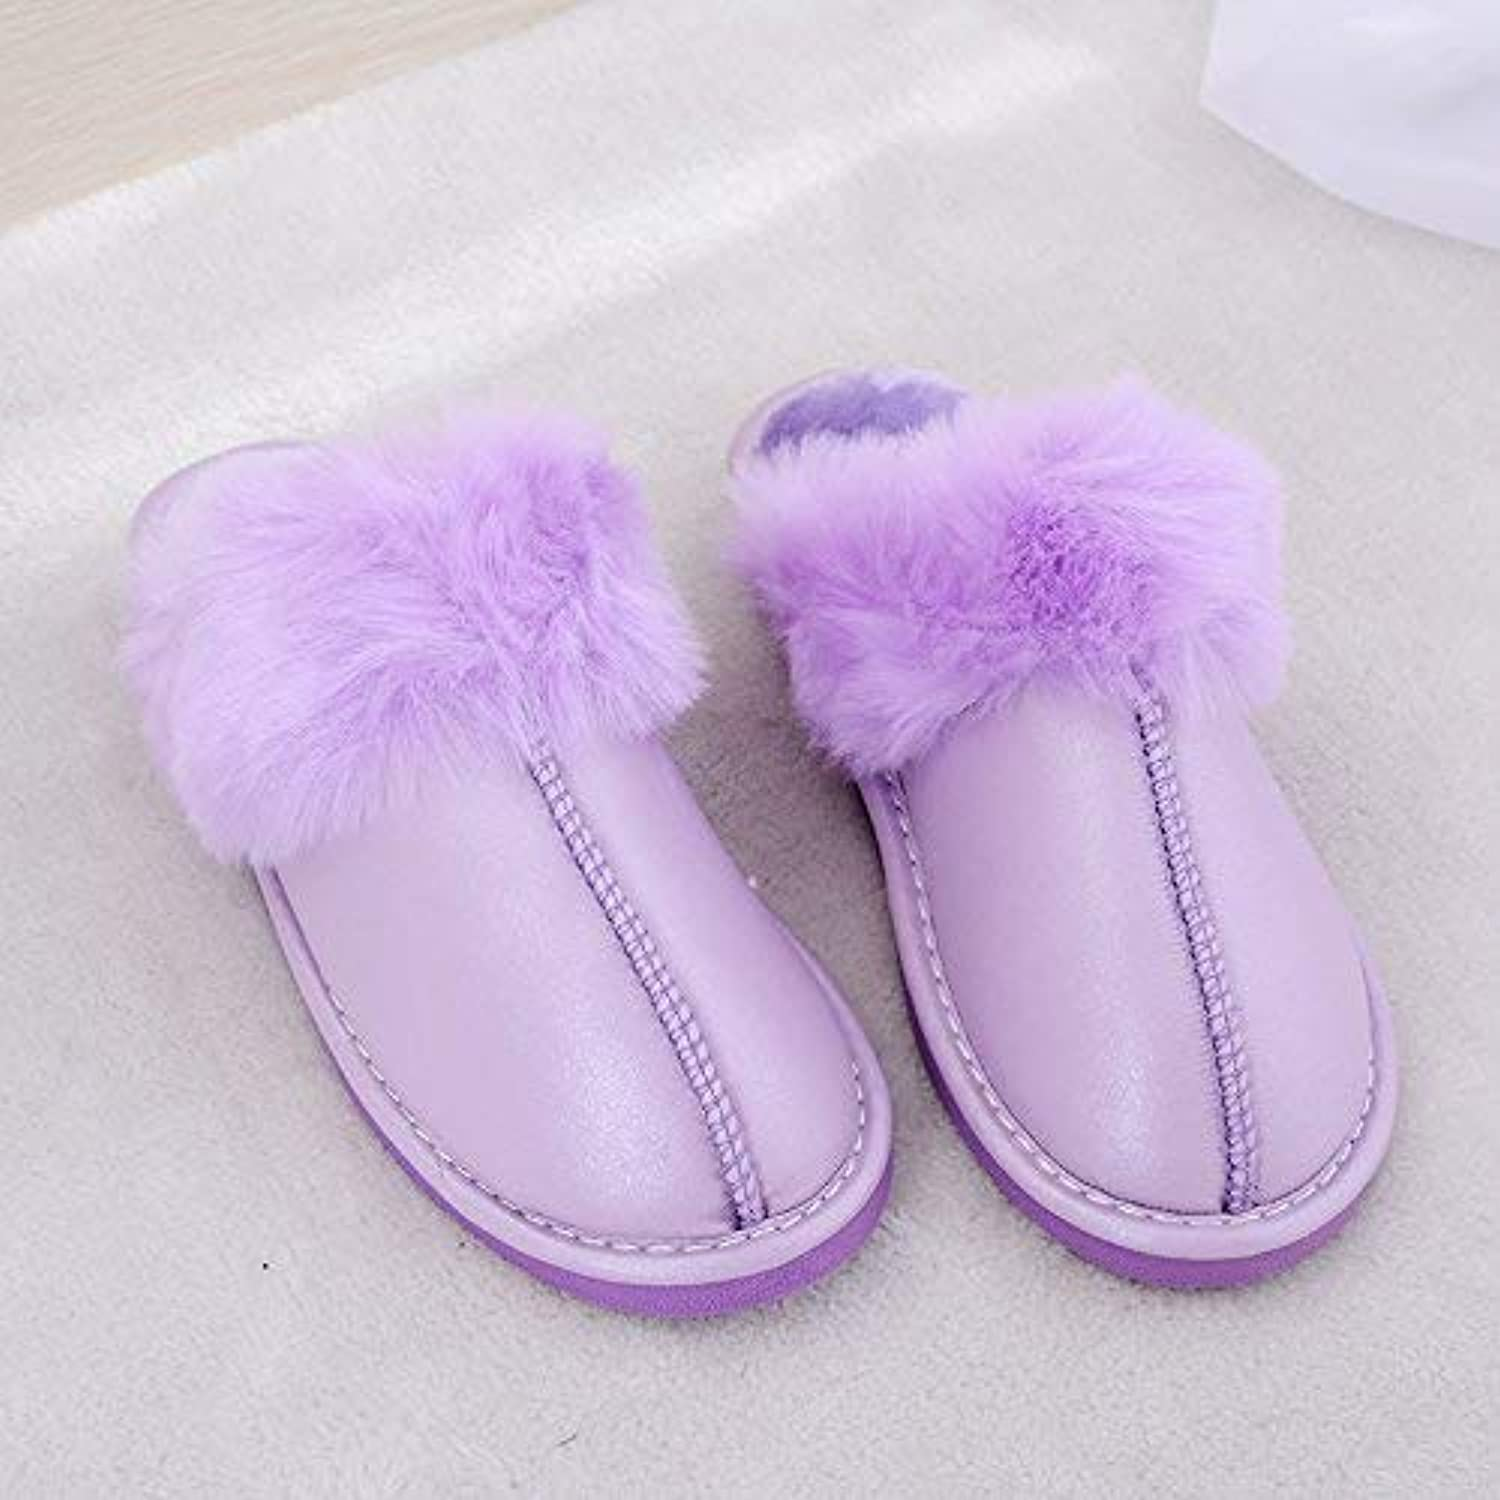 Lady Slippers Ladies Casual Autumn Winter Plush Cotton Slippers Warm Faux-Leather Slippers Elegant Super Quality for Women Purple 37